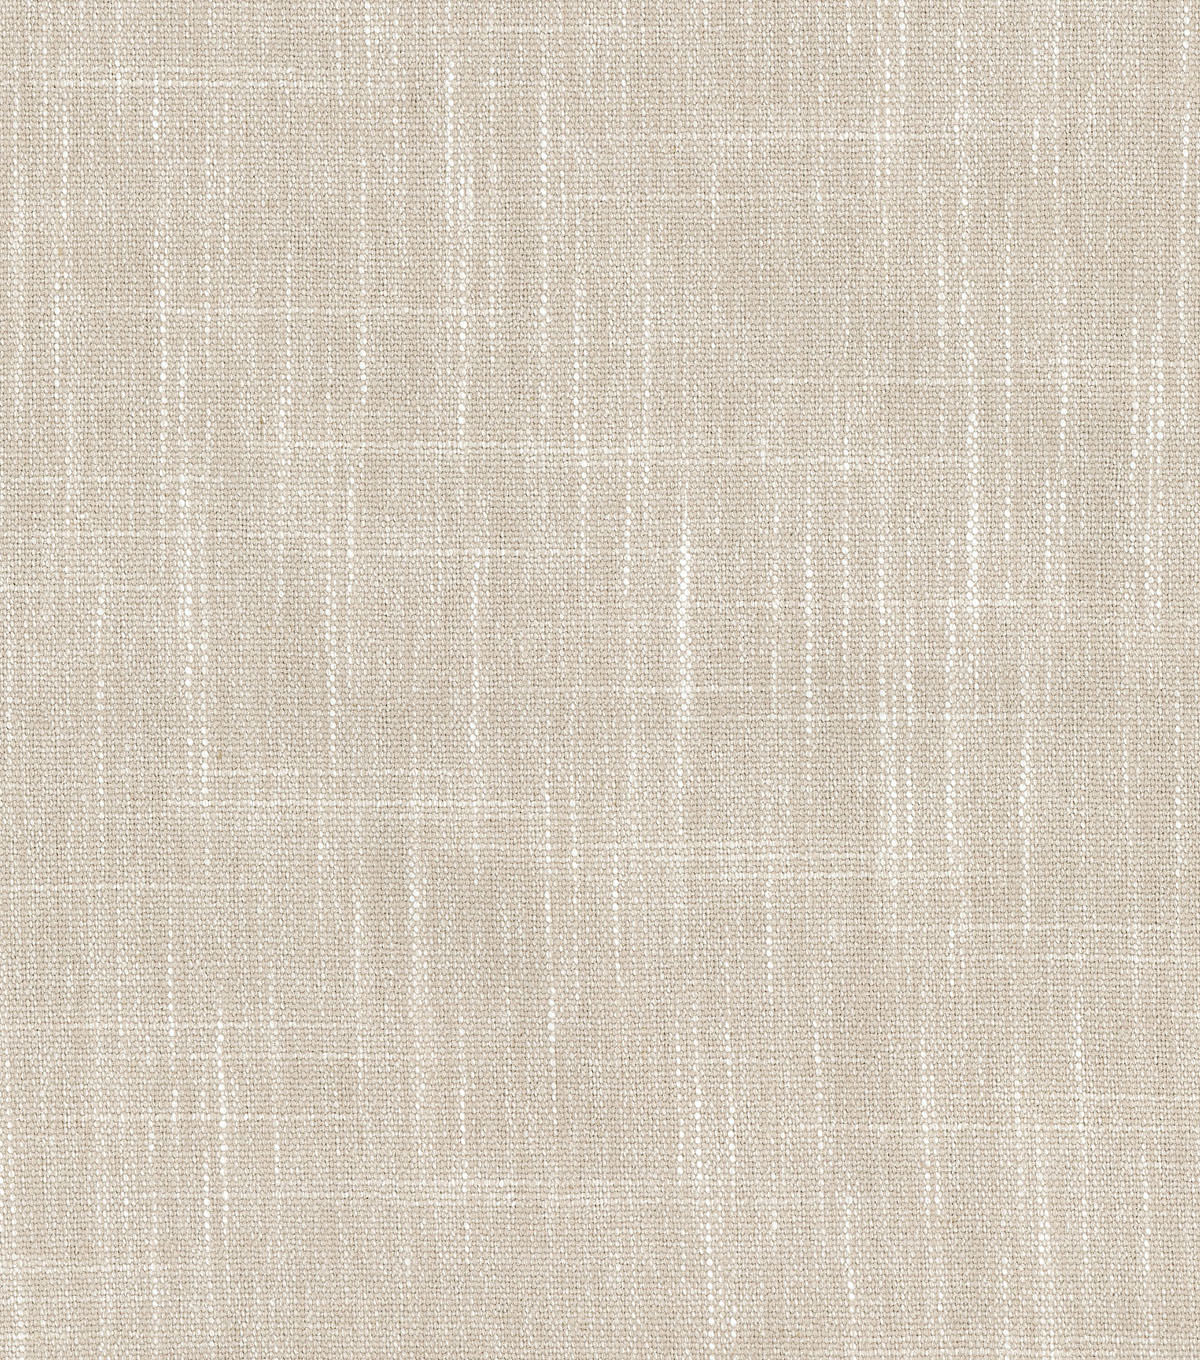 "Waverly Solid Fabric 57""-Orissa/Linen"